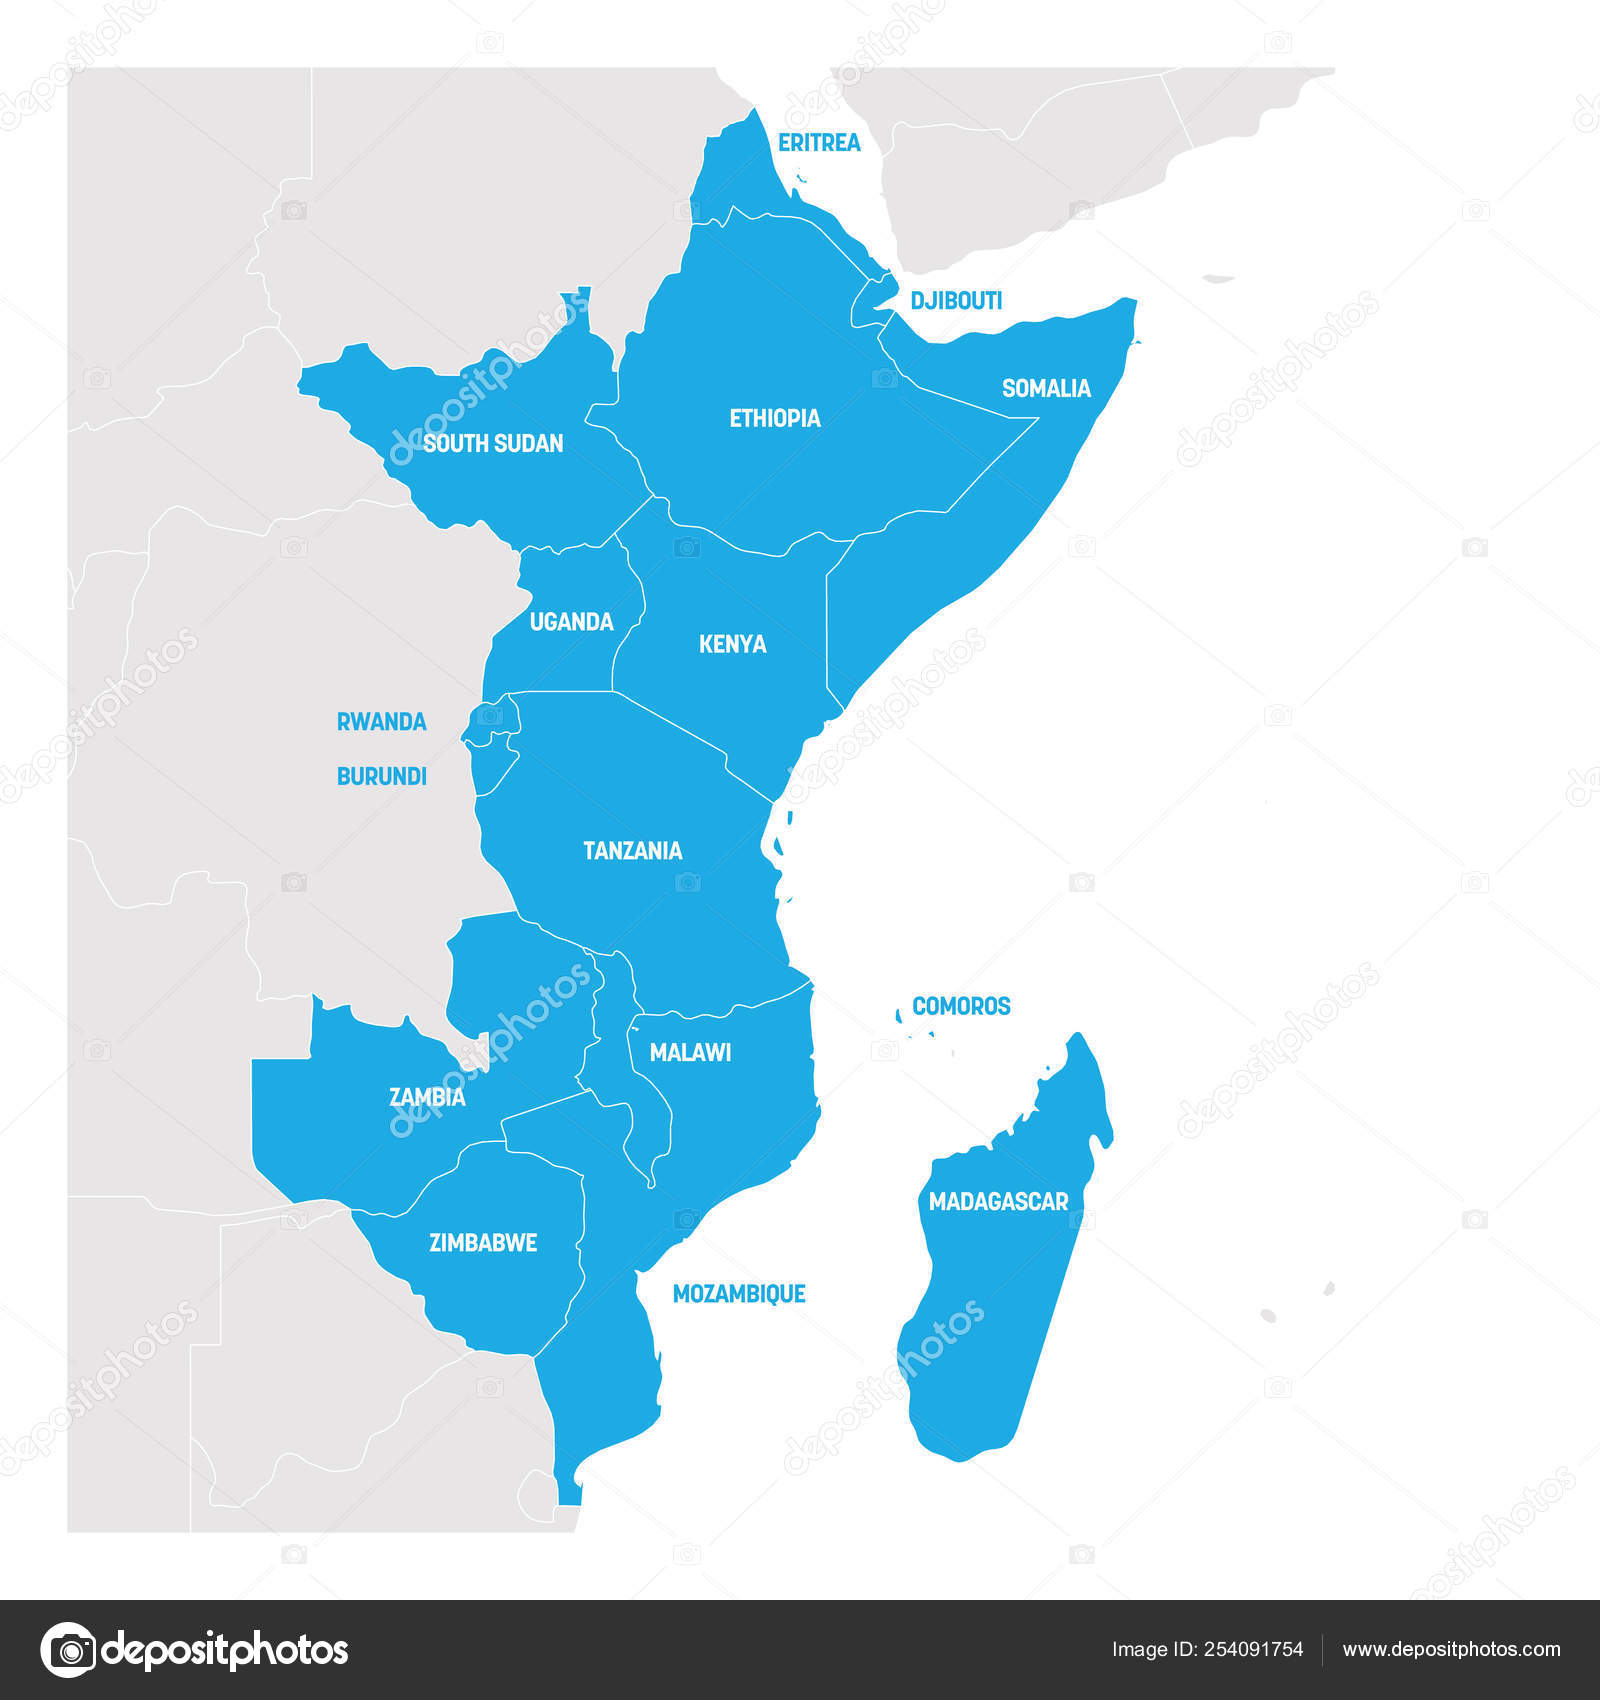 Map Of East Africa Showing Countries.East Africa Region Map Of Countries In Eastern Africa